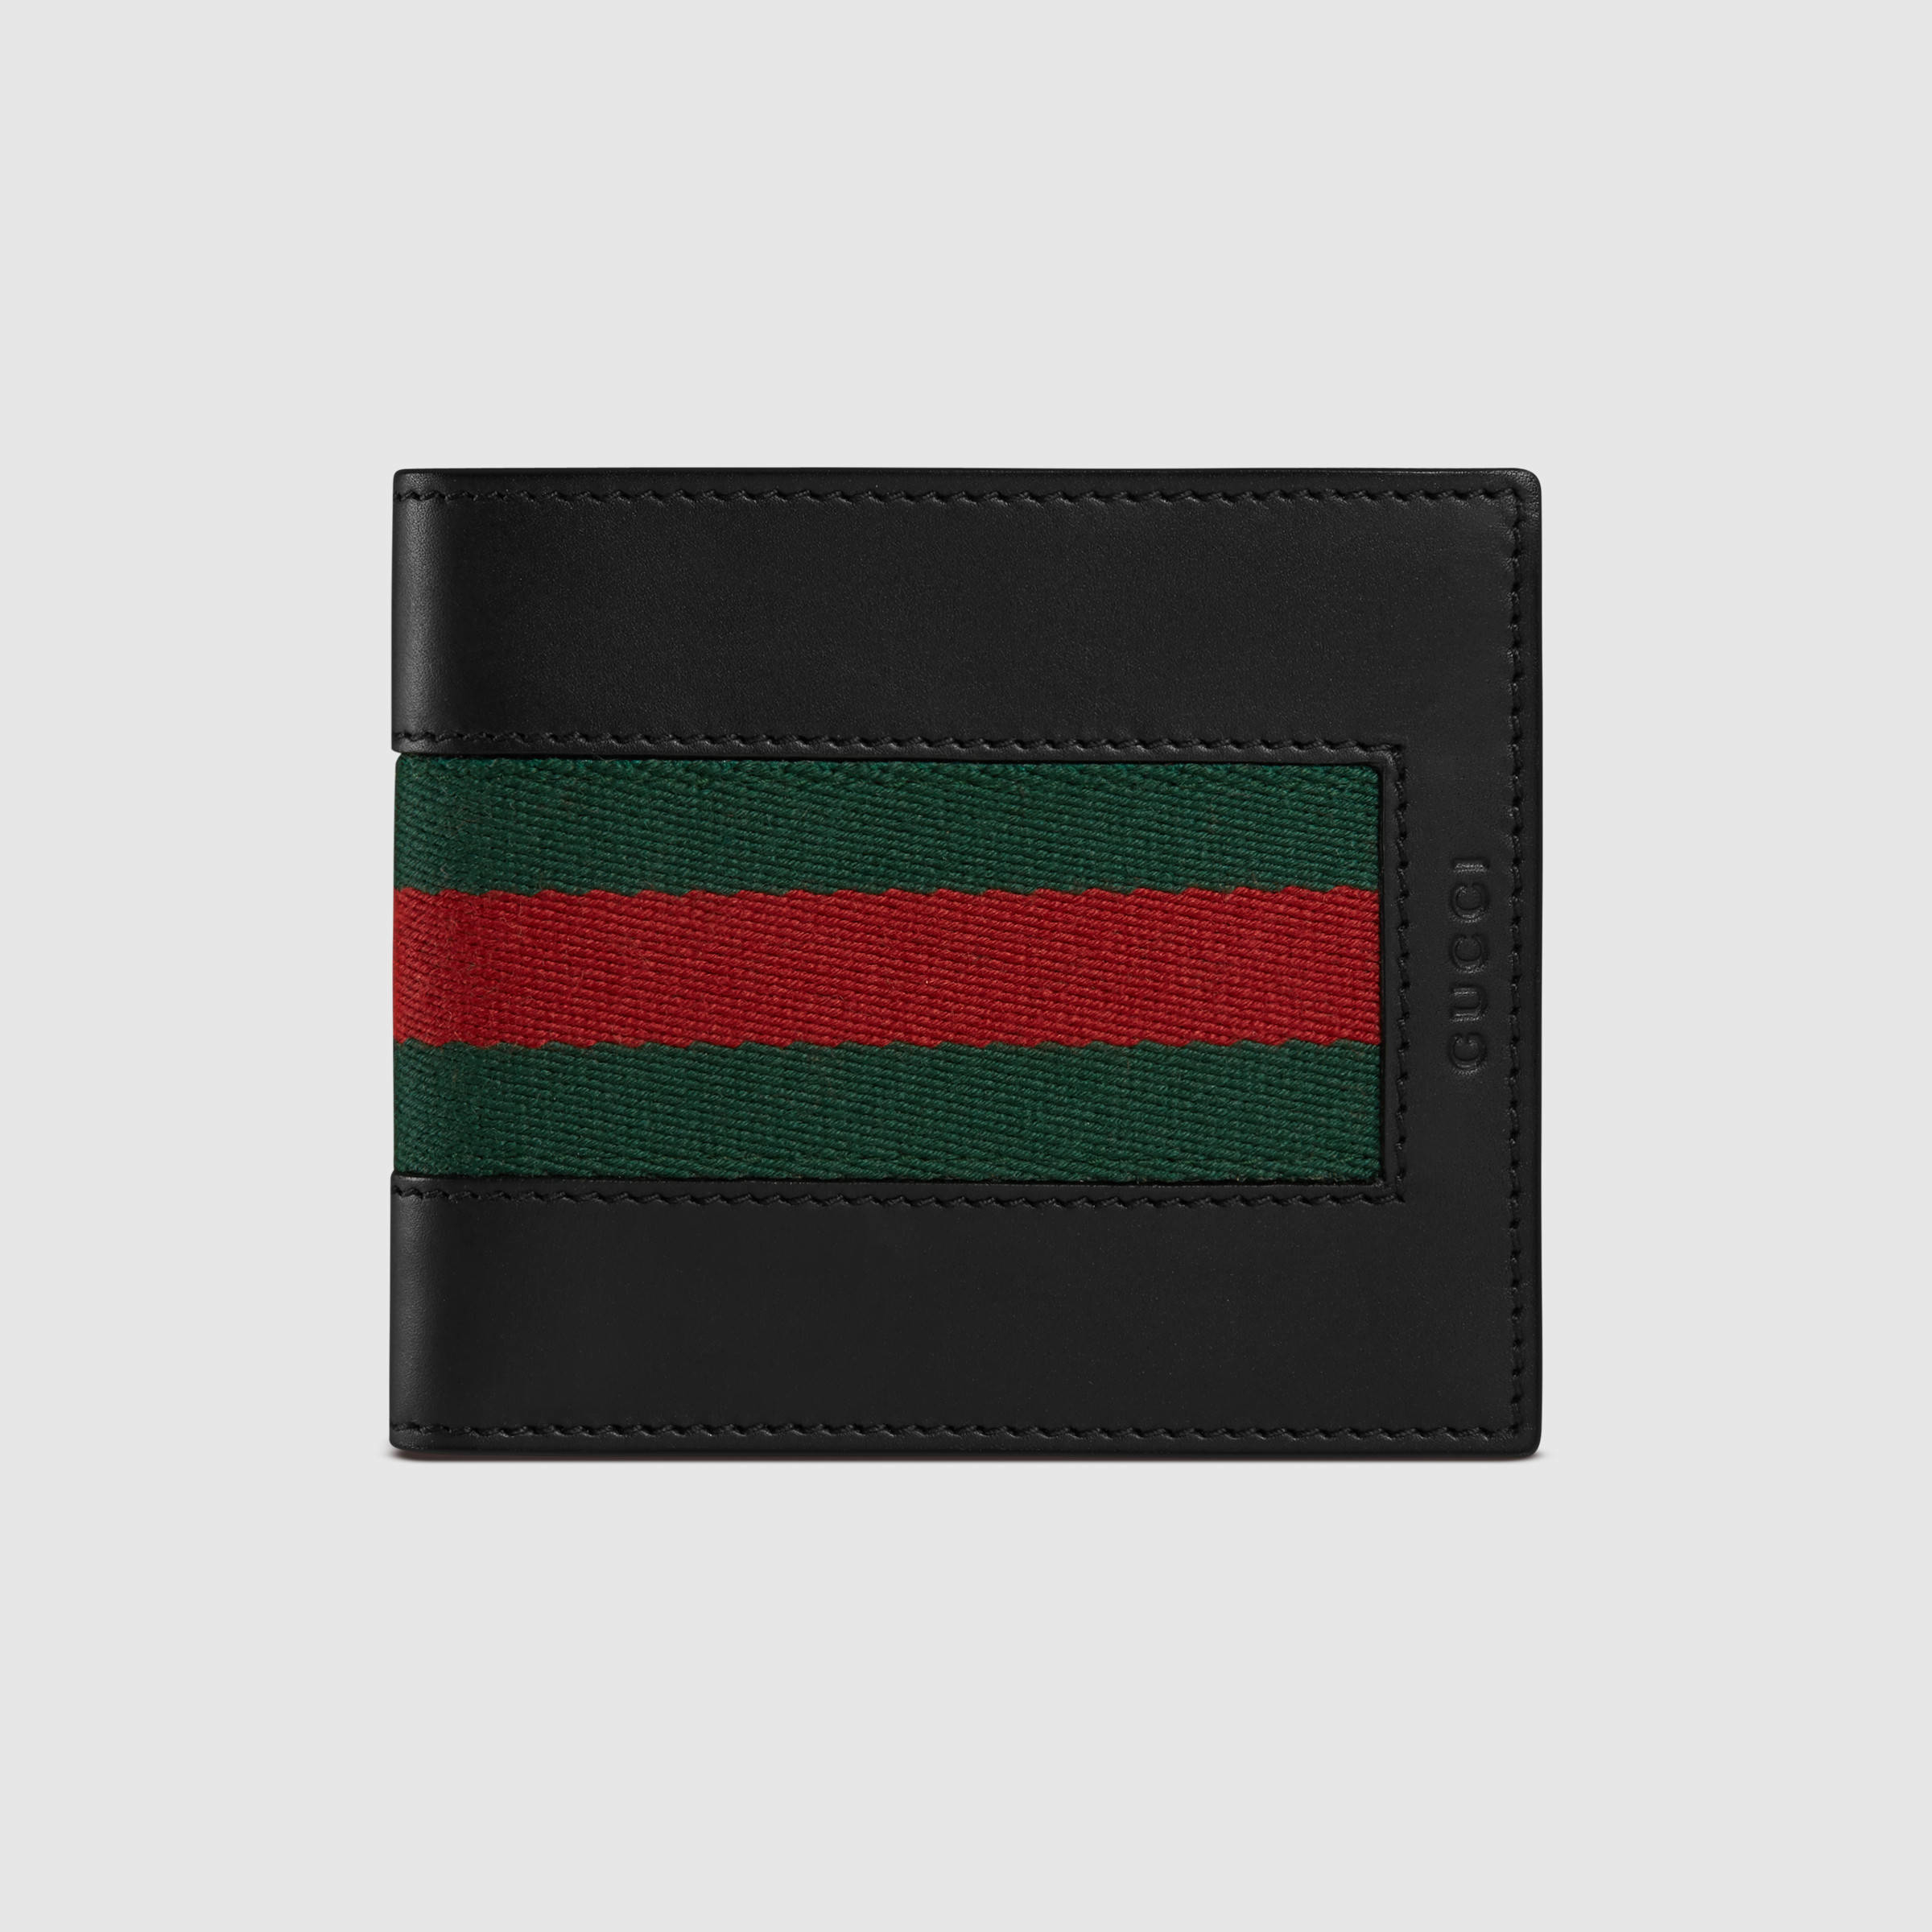 38e1be7534f3 Gucci Men Wallets On Sale